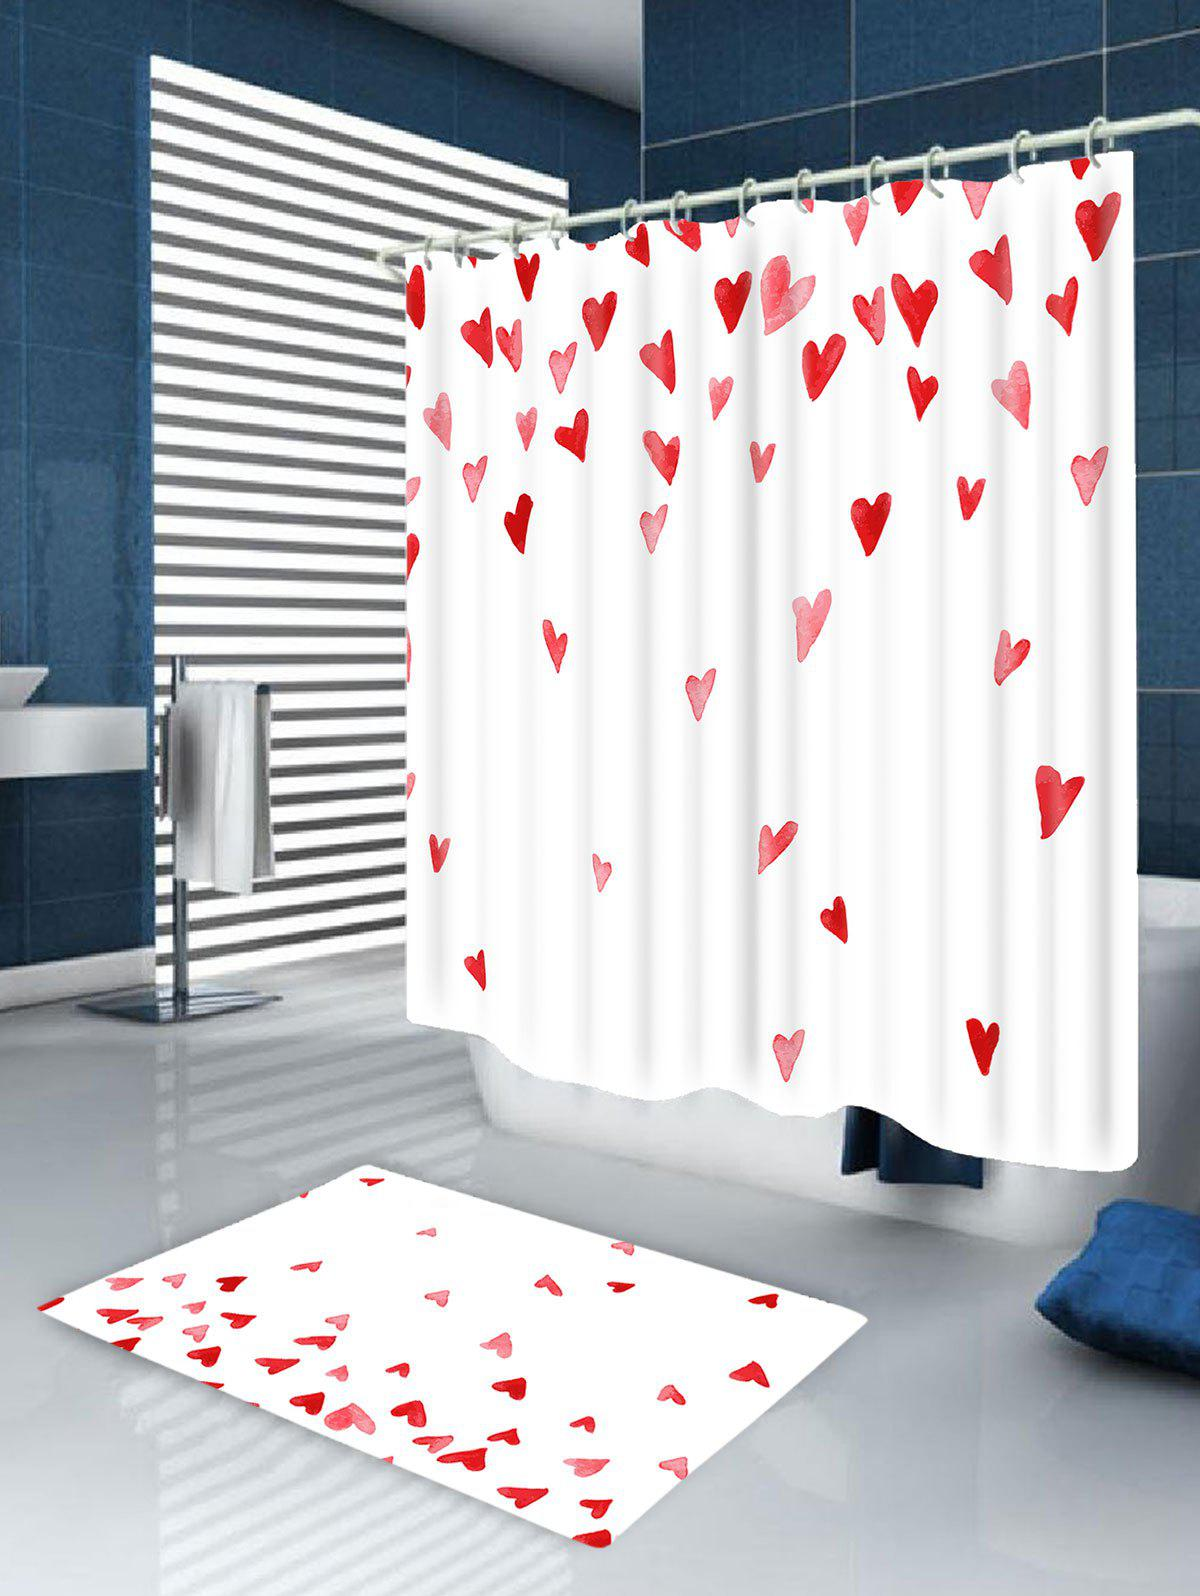 Heart of Love Printed Bath Room Shower Curtain - WHITE/RED W71 INCH * L71 INCH